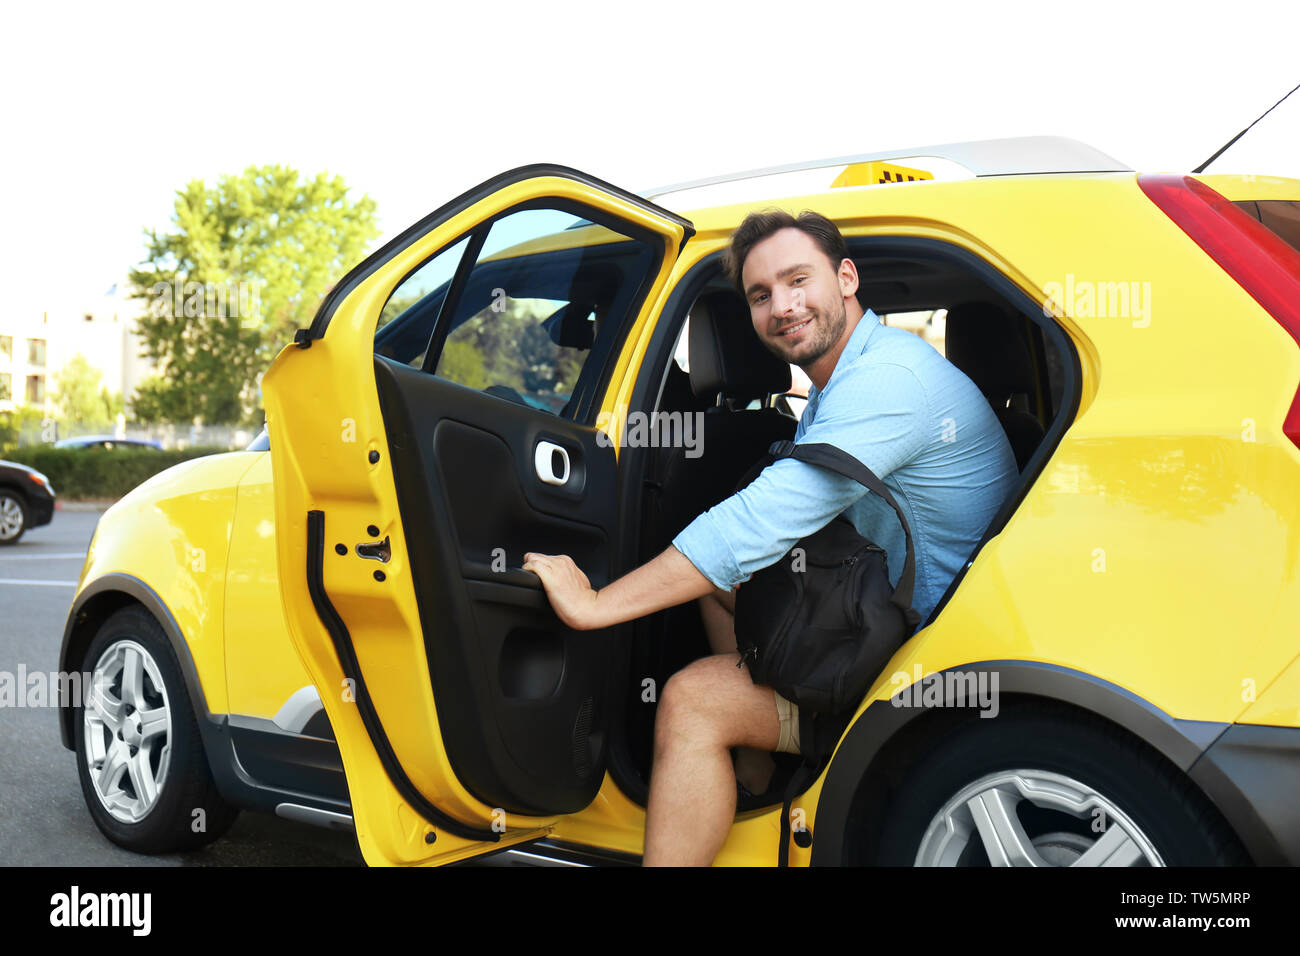 Young man in taxi car - Stock Image